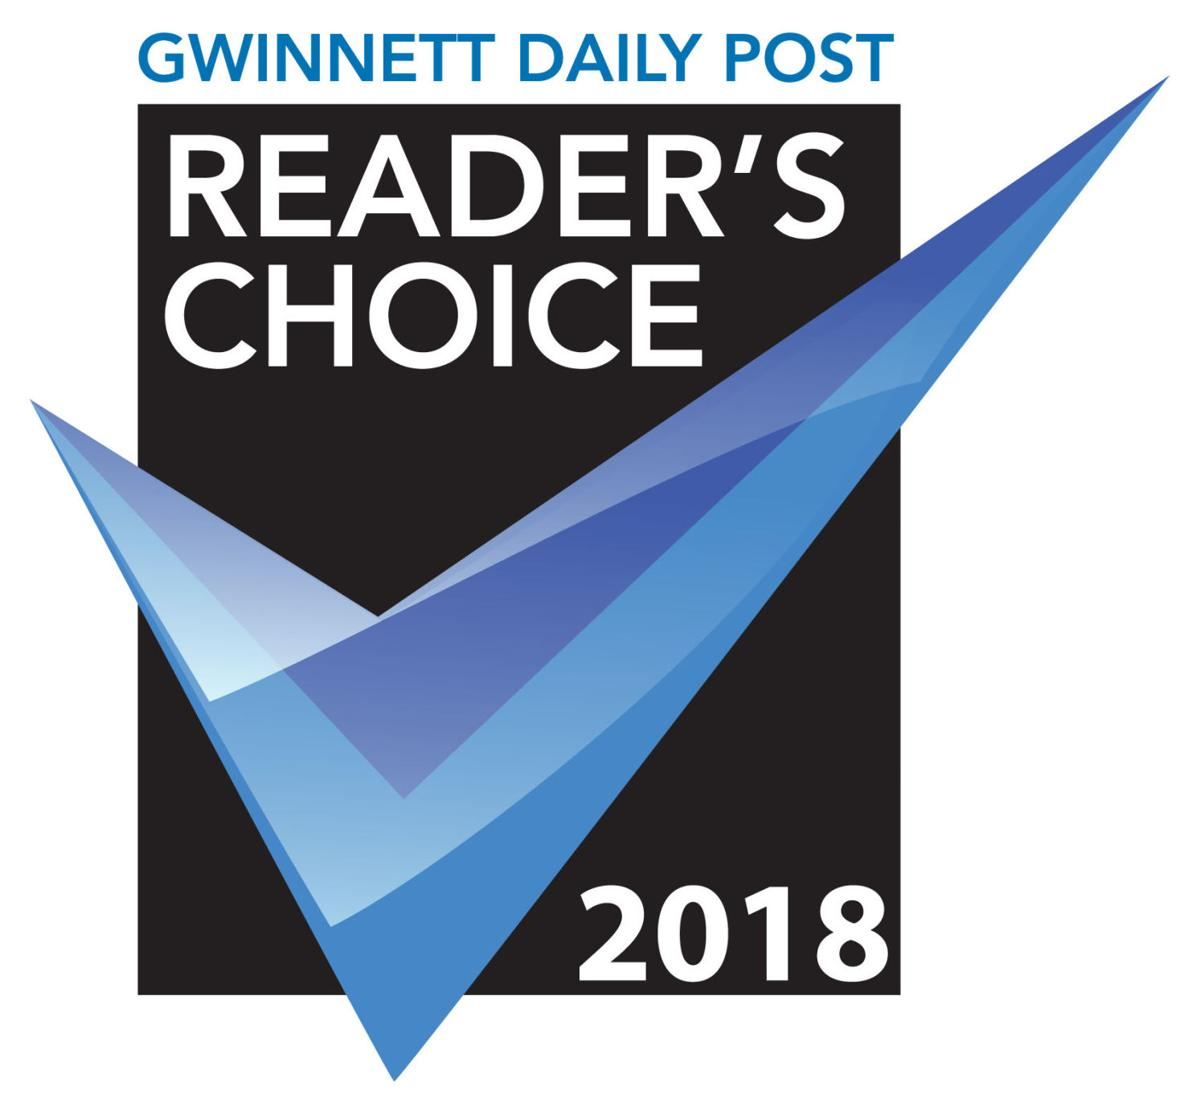 Daily Post Kicks Off Annual Reader's Choice Contest